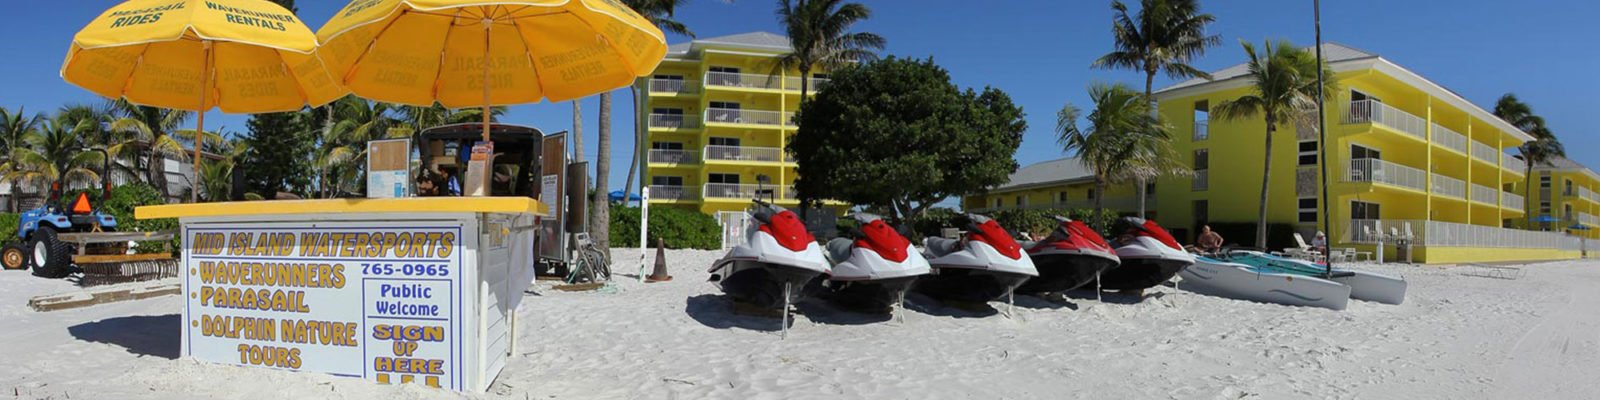 Rent water craft and waverunners on our private beach at Sandpiper Gulf Resort.